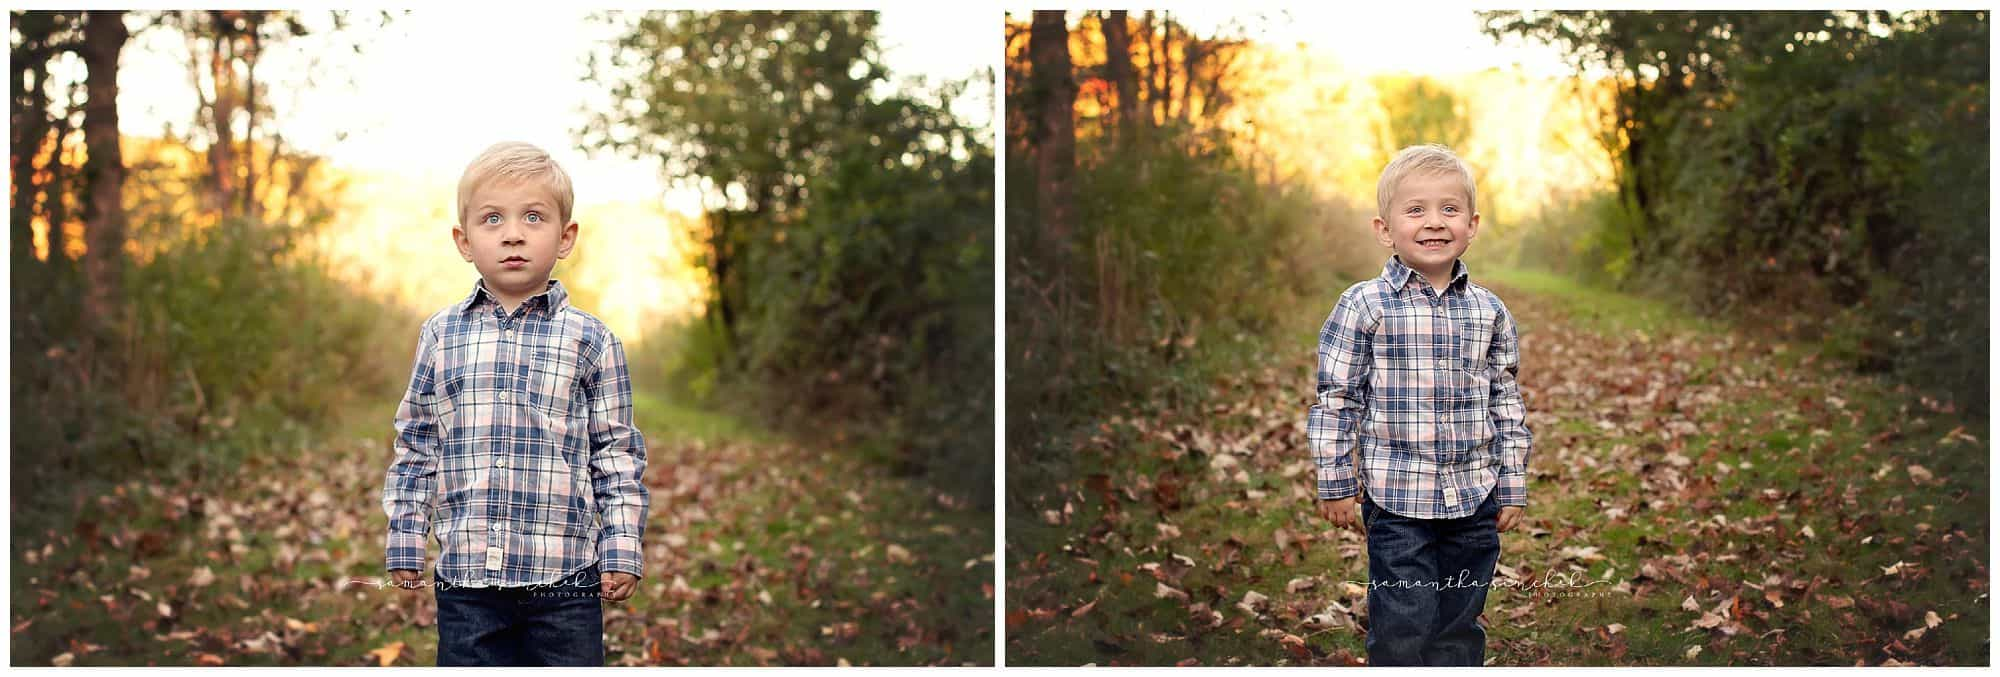 cincinnati photographer mini session at french park sinchek